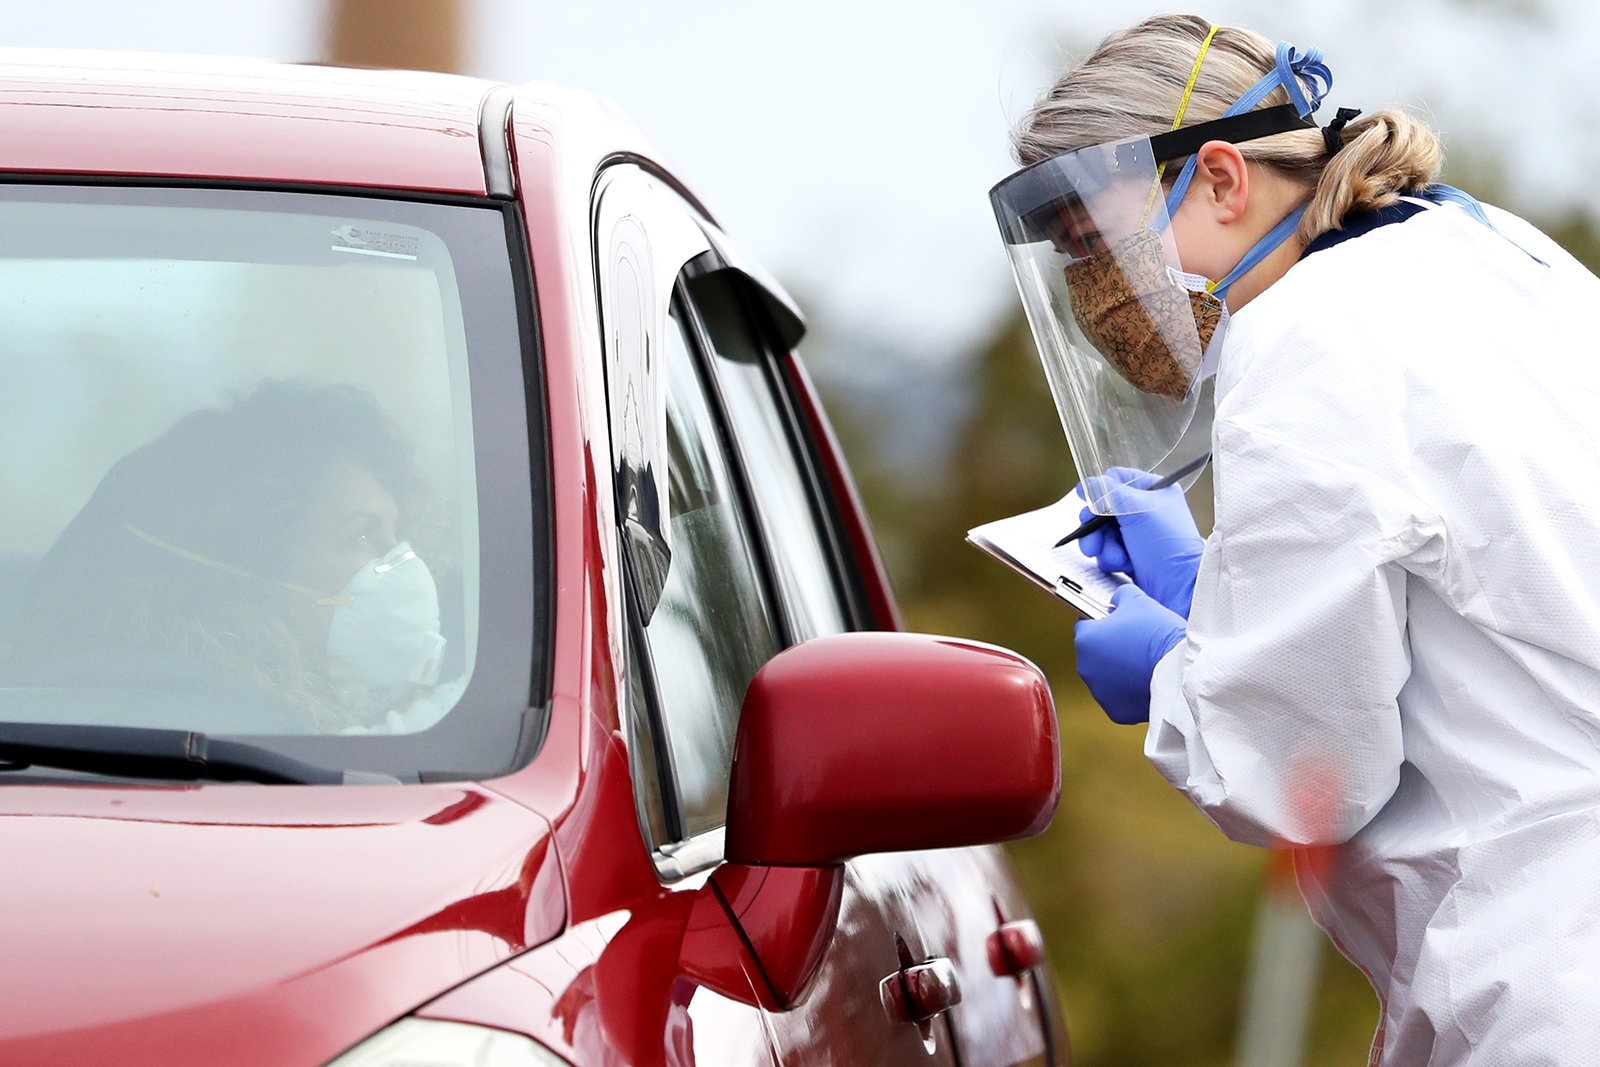 A medical professional works at a drive-thru coronavirus testing site at Cambridge Health Alliance Somerville Hospital on April 28, in Somerville, Massachusetts.